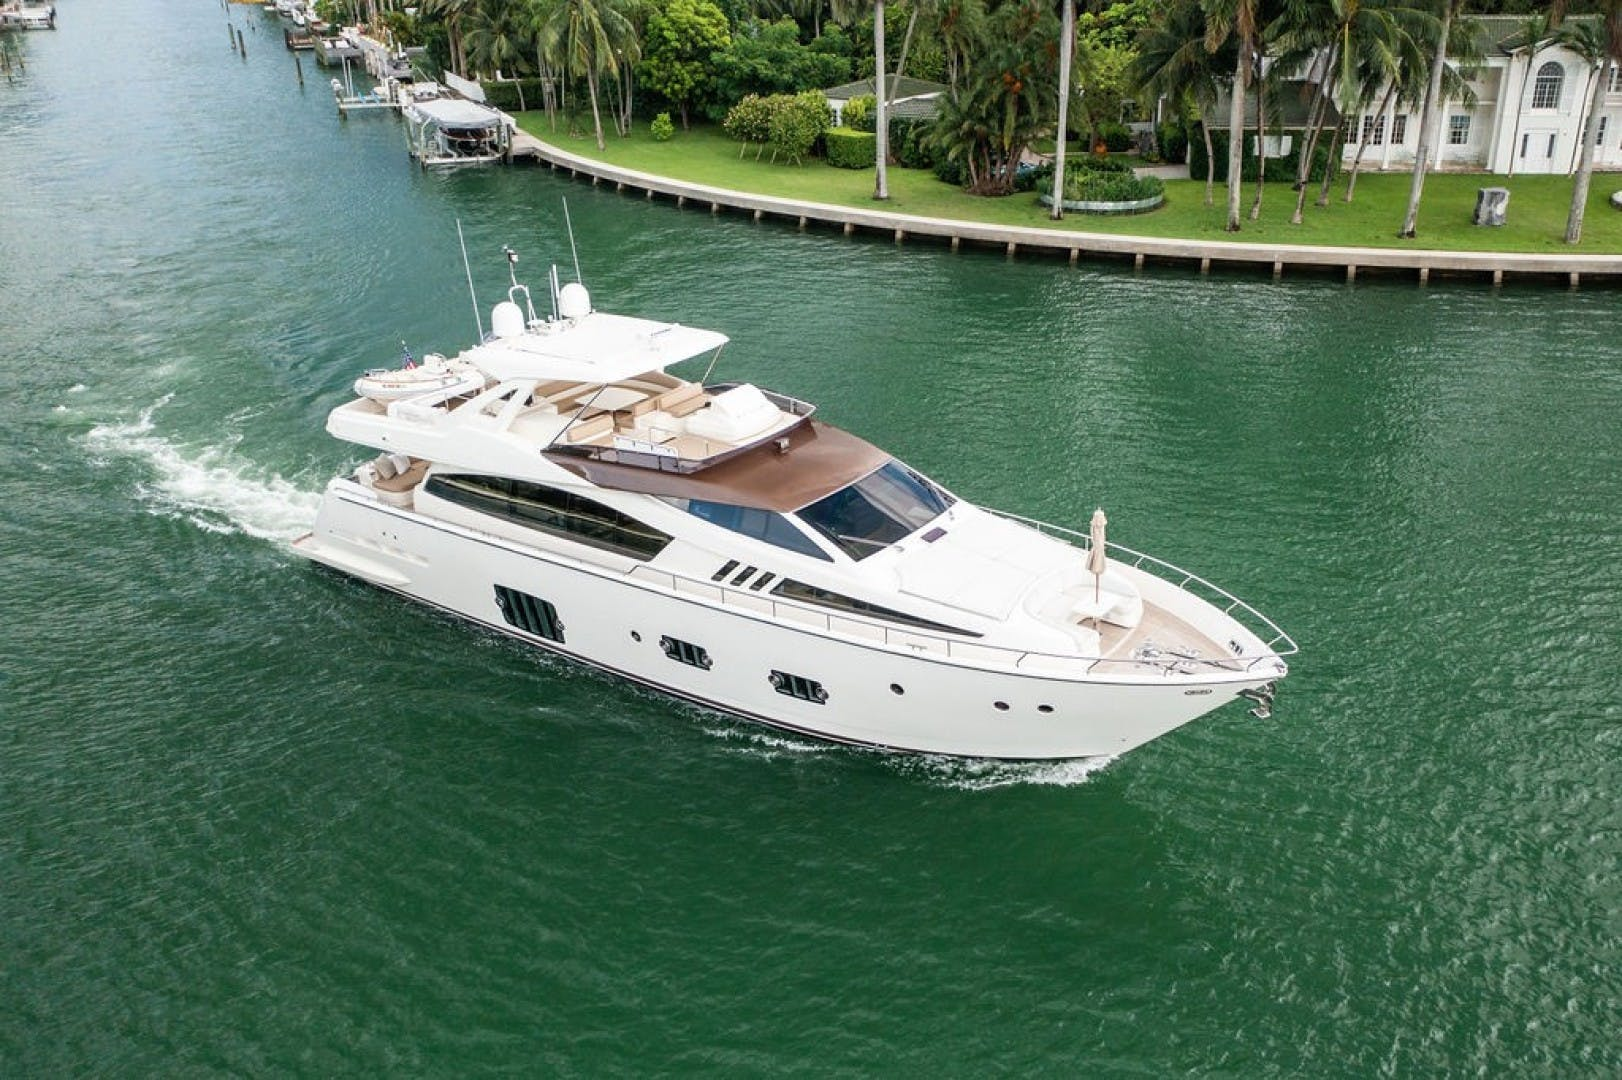 2014 Ferretti Yachts 80' F800 Living Life 3   Picture 4 of 82